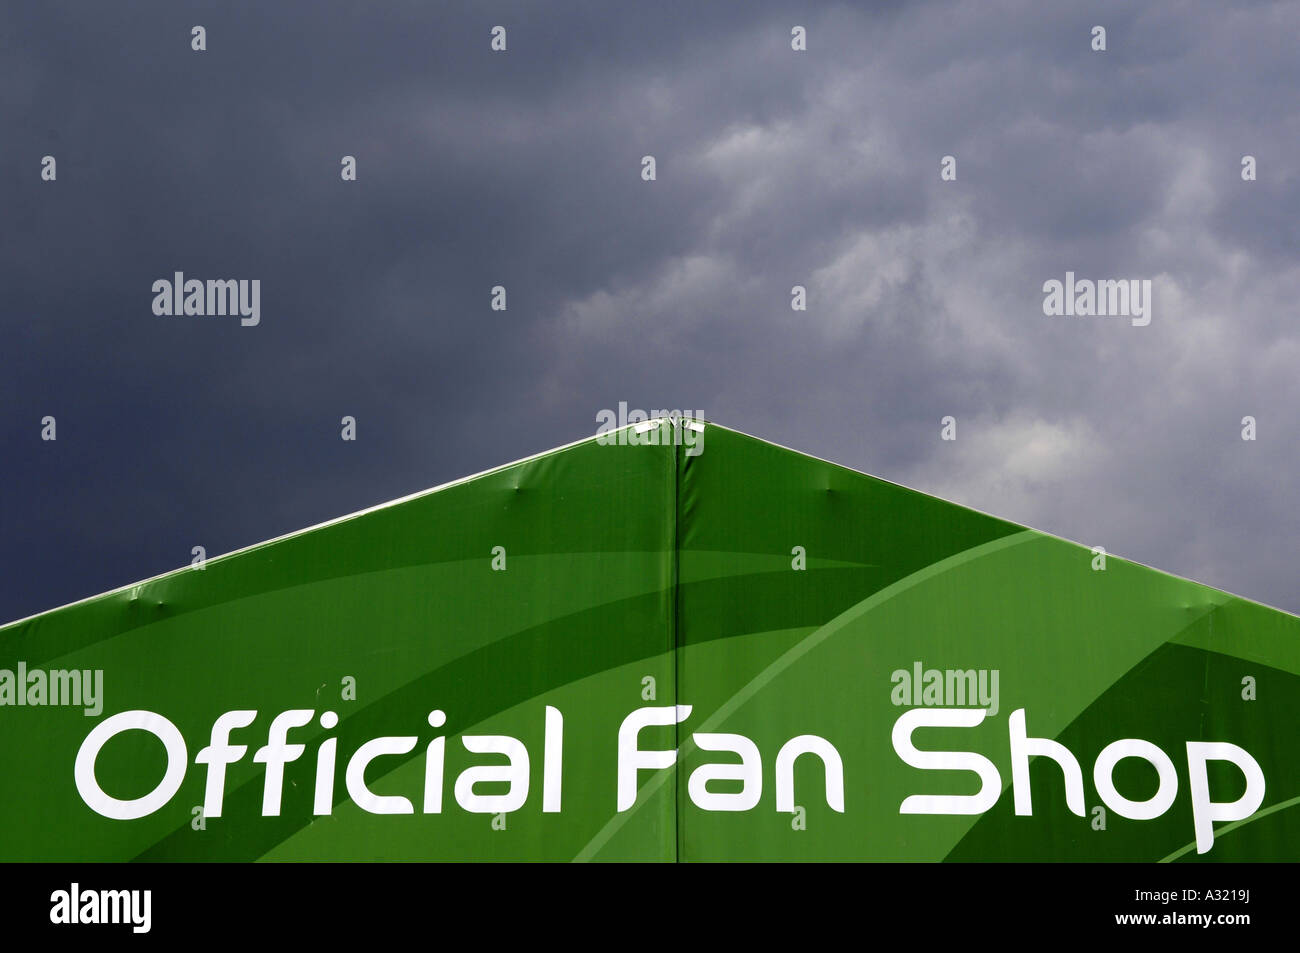 79c2bc3d8 official fan shop fifa world cup 2006 hamburg germany german deutschland  deutsch colour color clouds stormy dark weather suppor